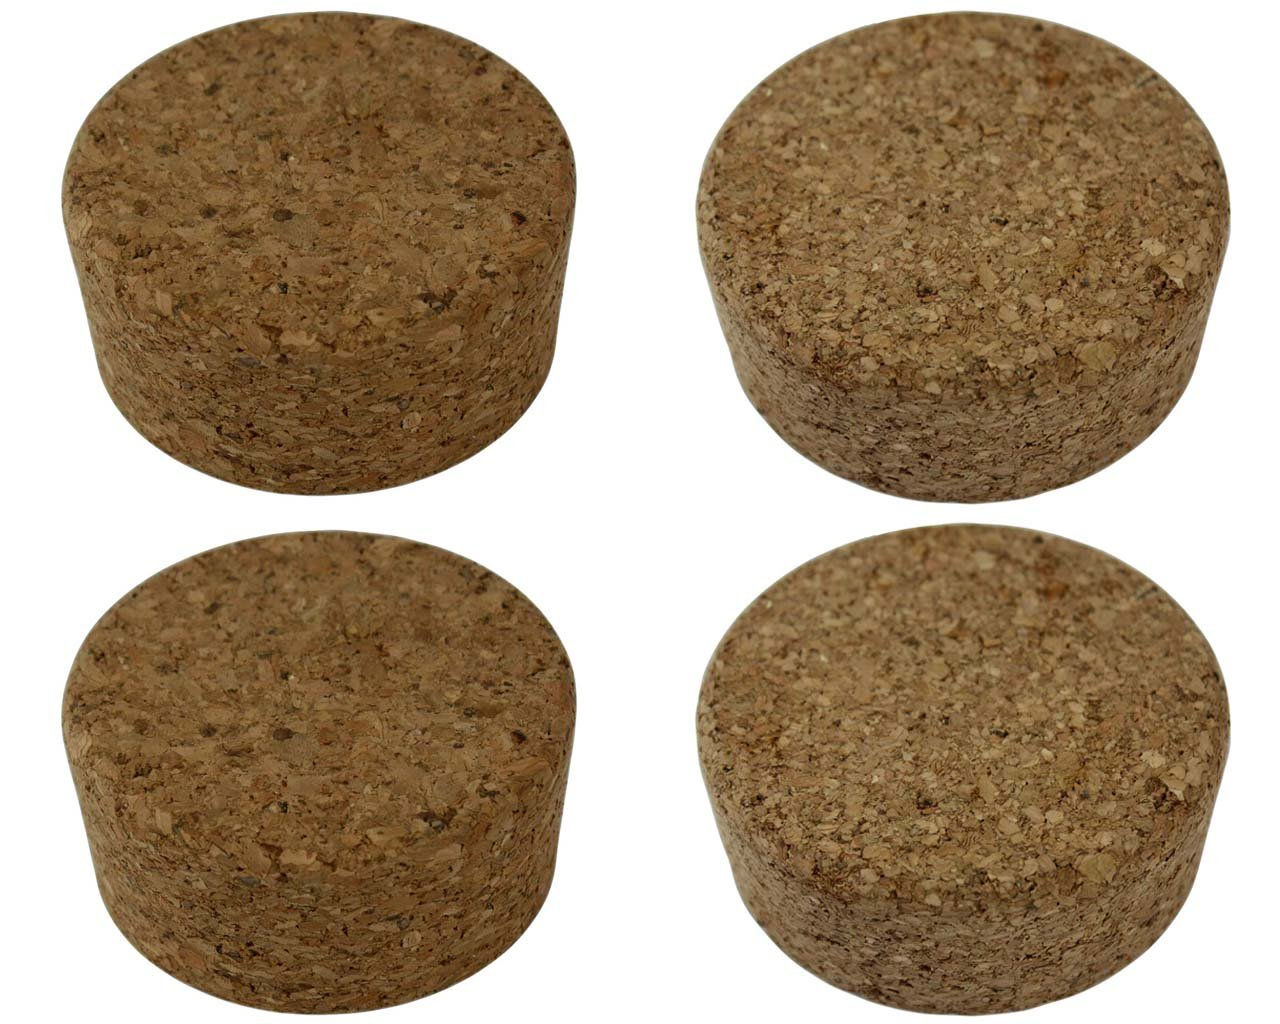 Cork Lids/Stoppers for Mason, Ball, Canning Jars (2 Regular Mouth + 2 Wide Mouth) Mason Jar Lifestyle